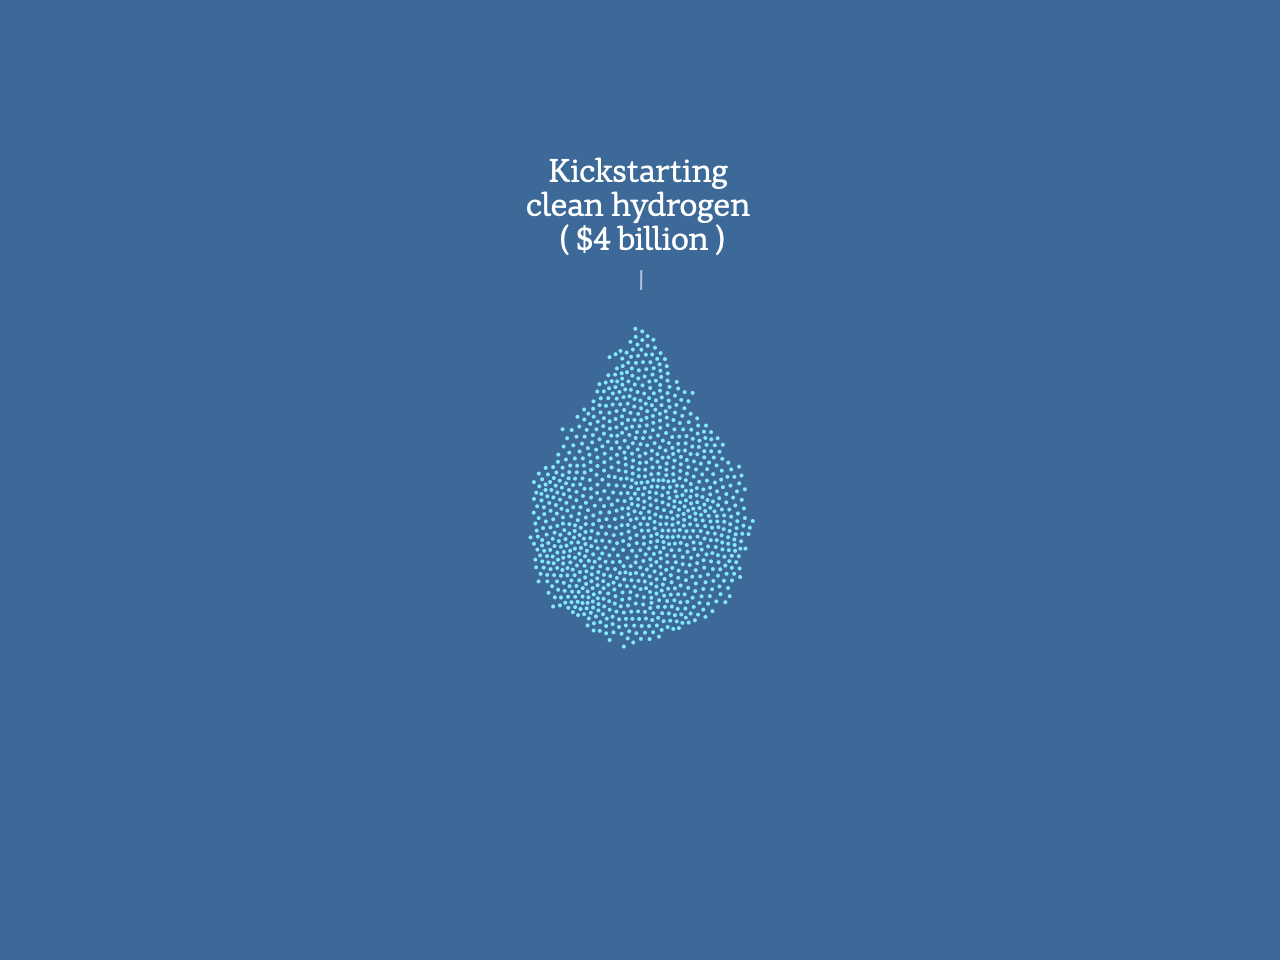 A graphic of dots in the shape of a water droplet, indicating $4 billion spent on kickstarting clean hydrogen.